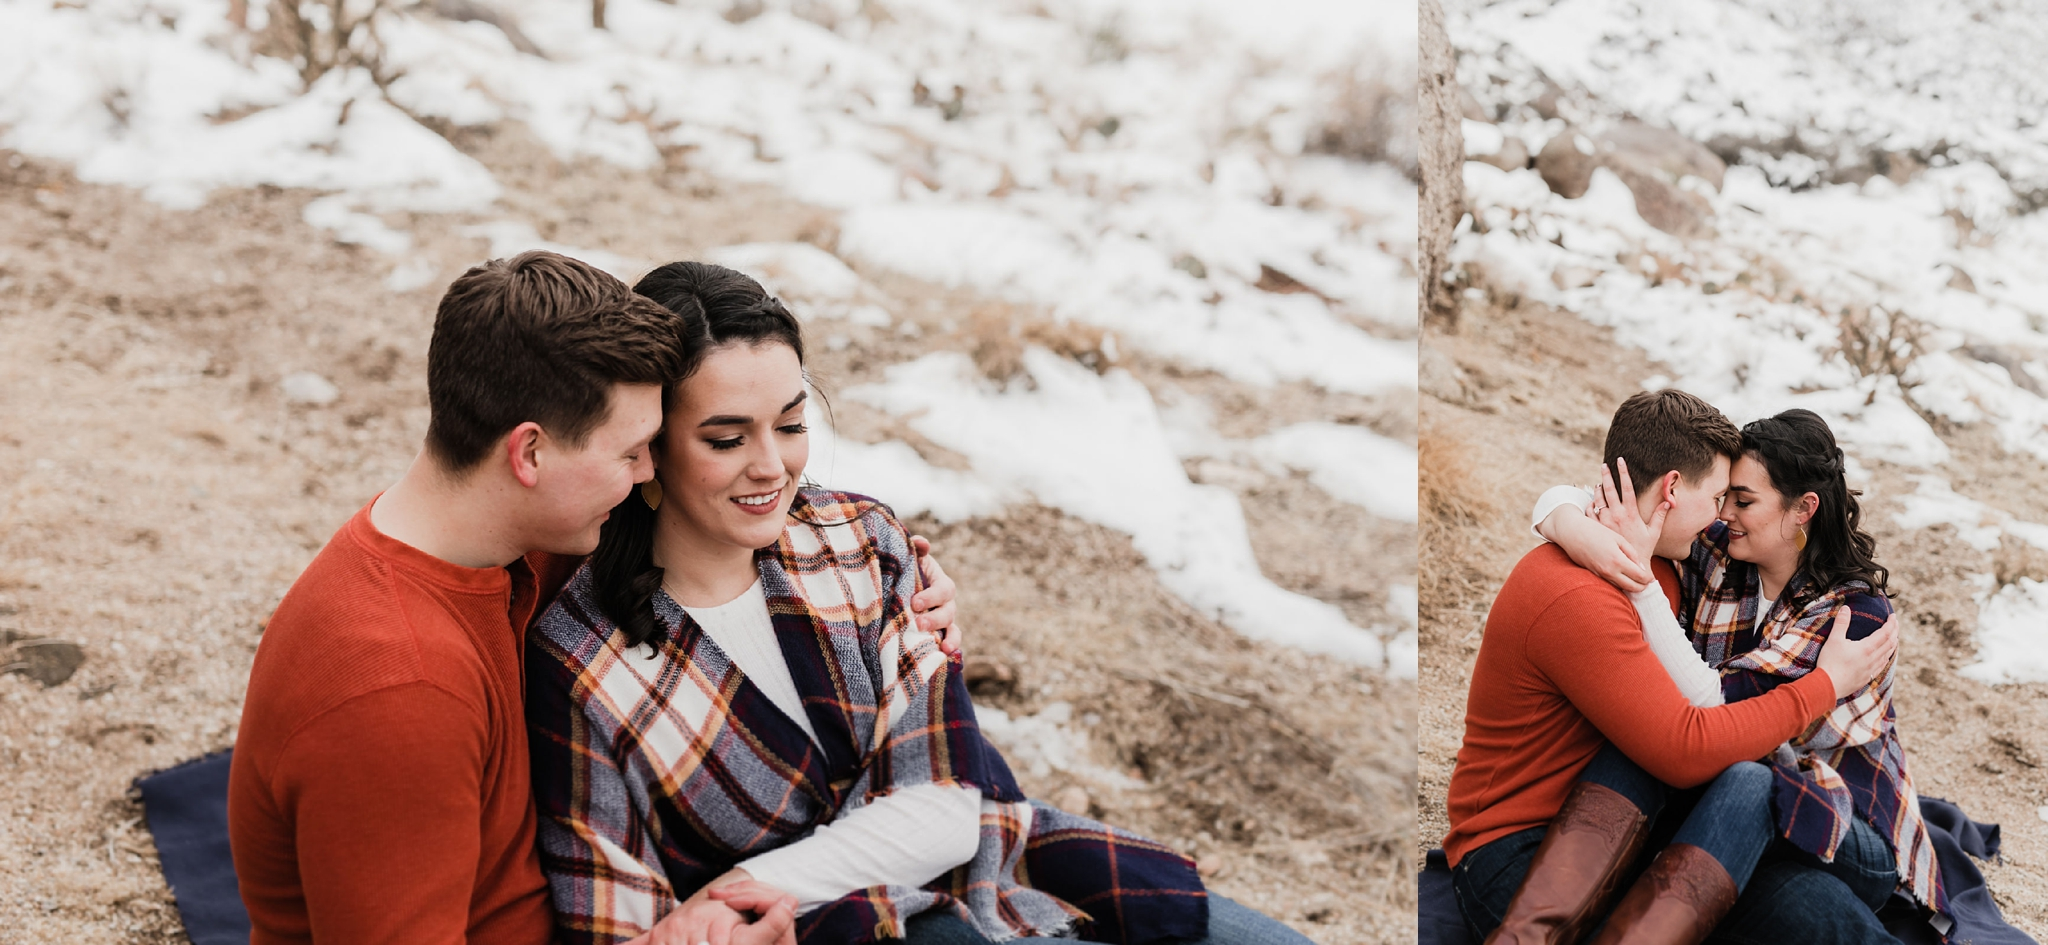 Alicia+lucia+photography+-+albuquerque+wedding+photographer+-+santa+fe+wedding+photography+-+new+mexico+wedding+photographer+-+new+mexico+wedding+-+engagement+-+albuquerque+engagement+-+winter+engagement+-+hyatt+tamaya+wedding_0019.jpg